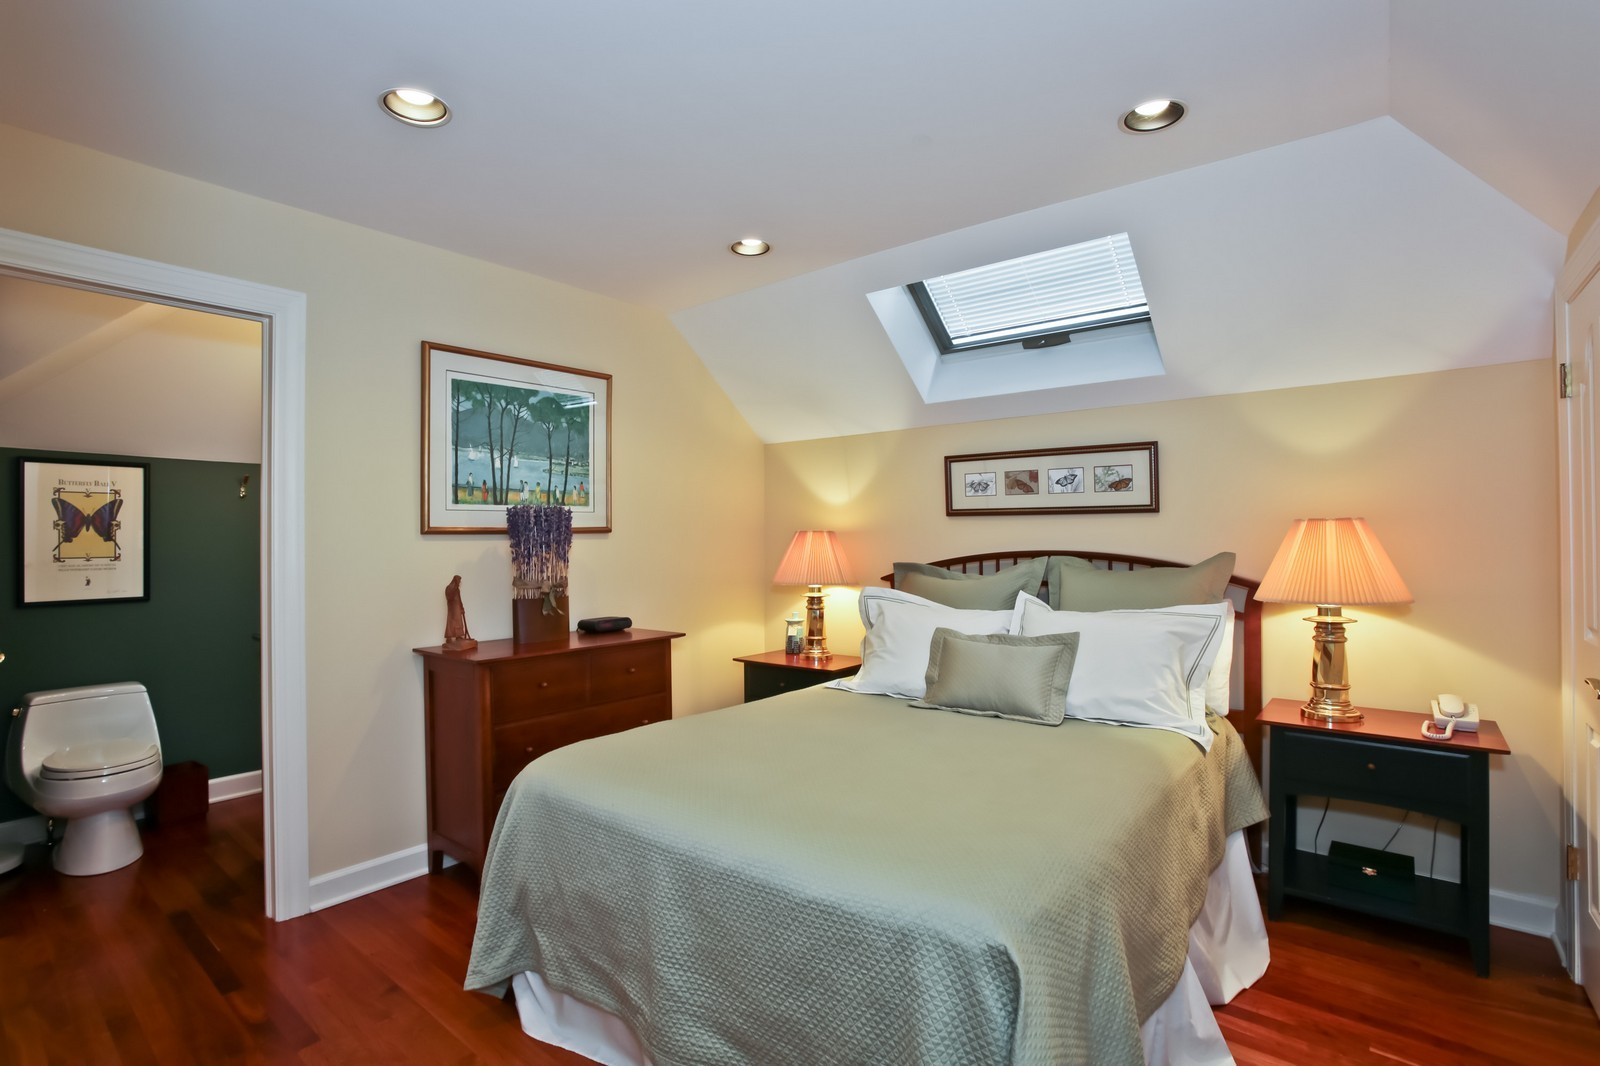 Real Estate Photography - 25W445 Plamondon Rd, Wheaton, IL, 60189 - Guest Quarters Bedroom